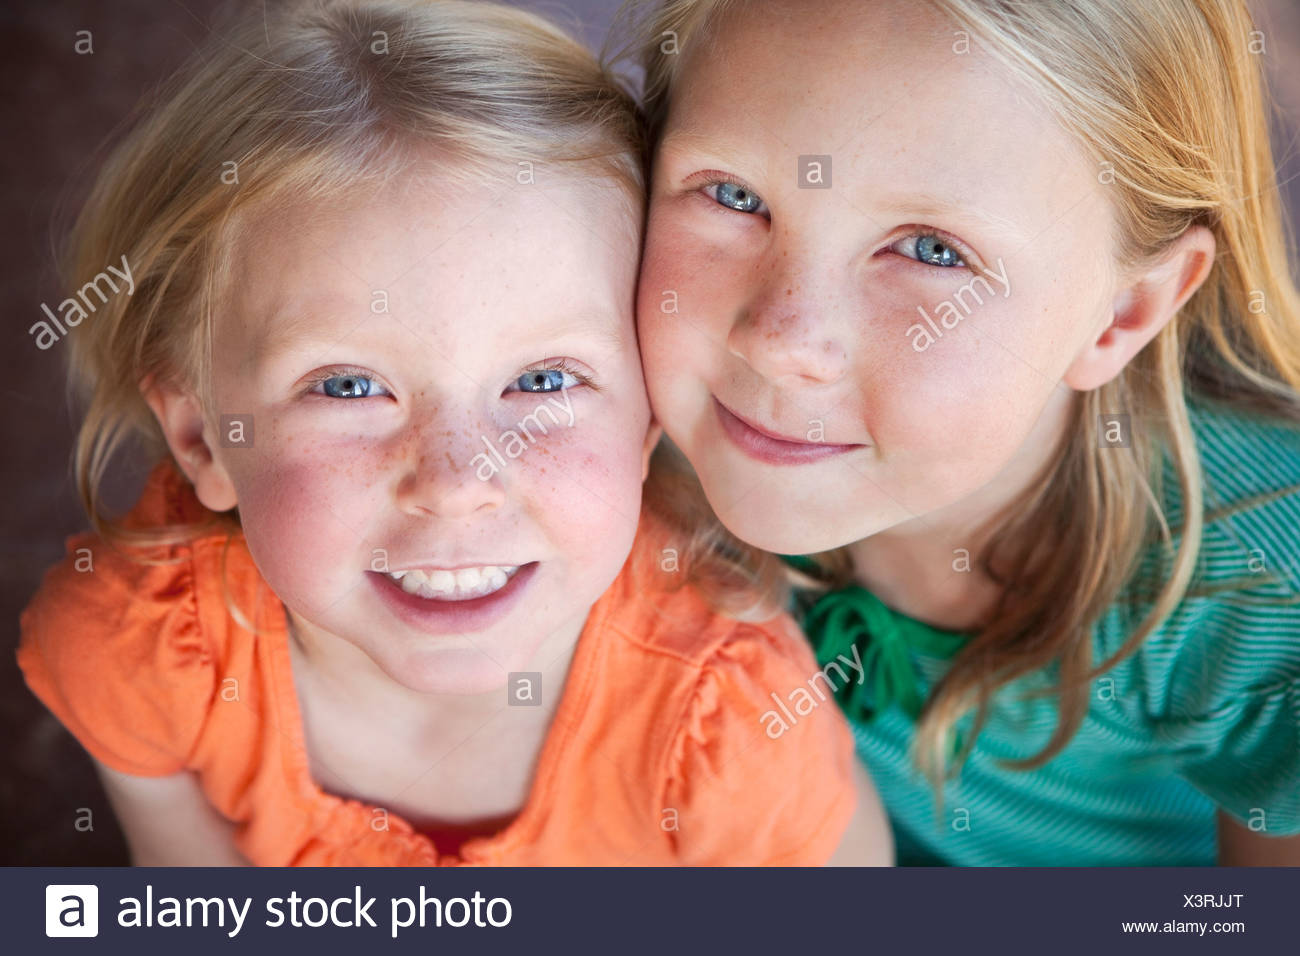 A portrait of two sisters smiling. Two young girls, with blue eyes and blonde hair. - Stock Image